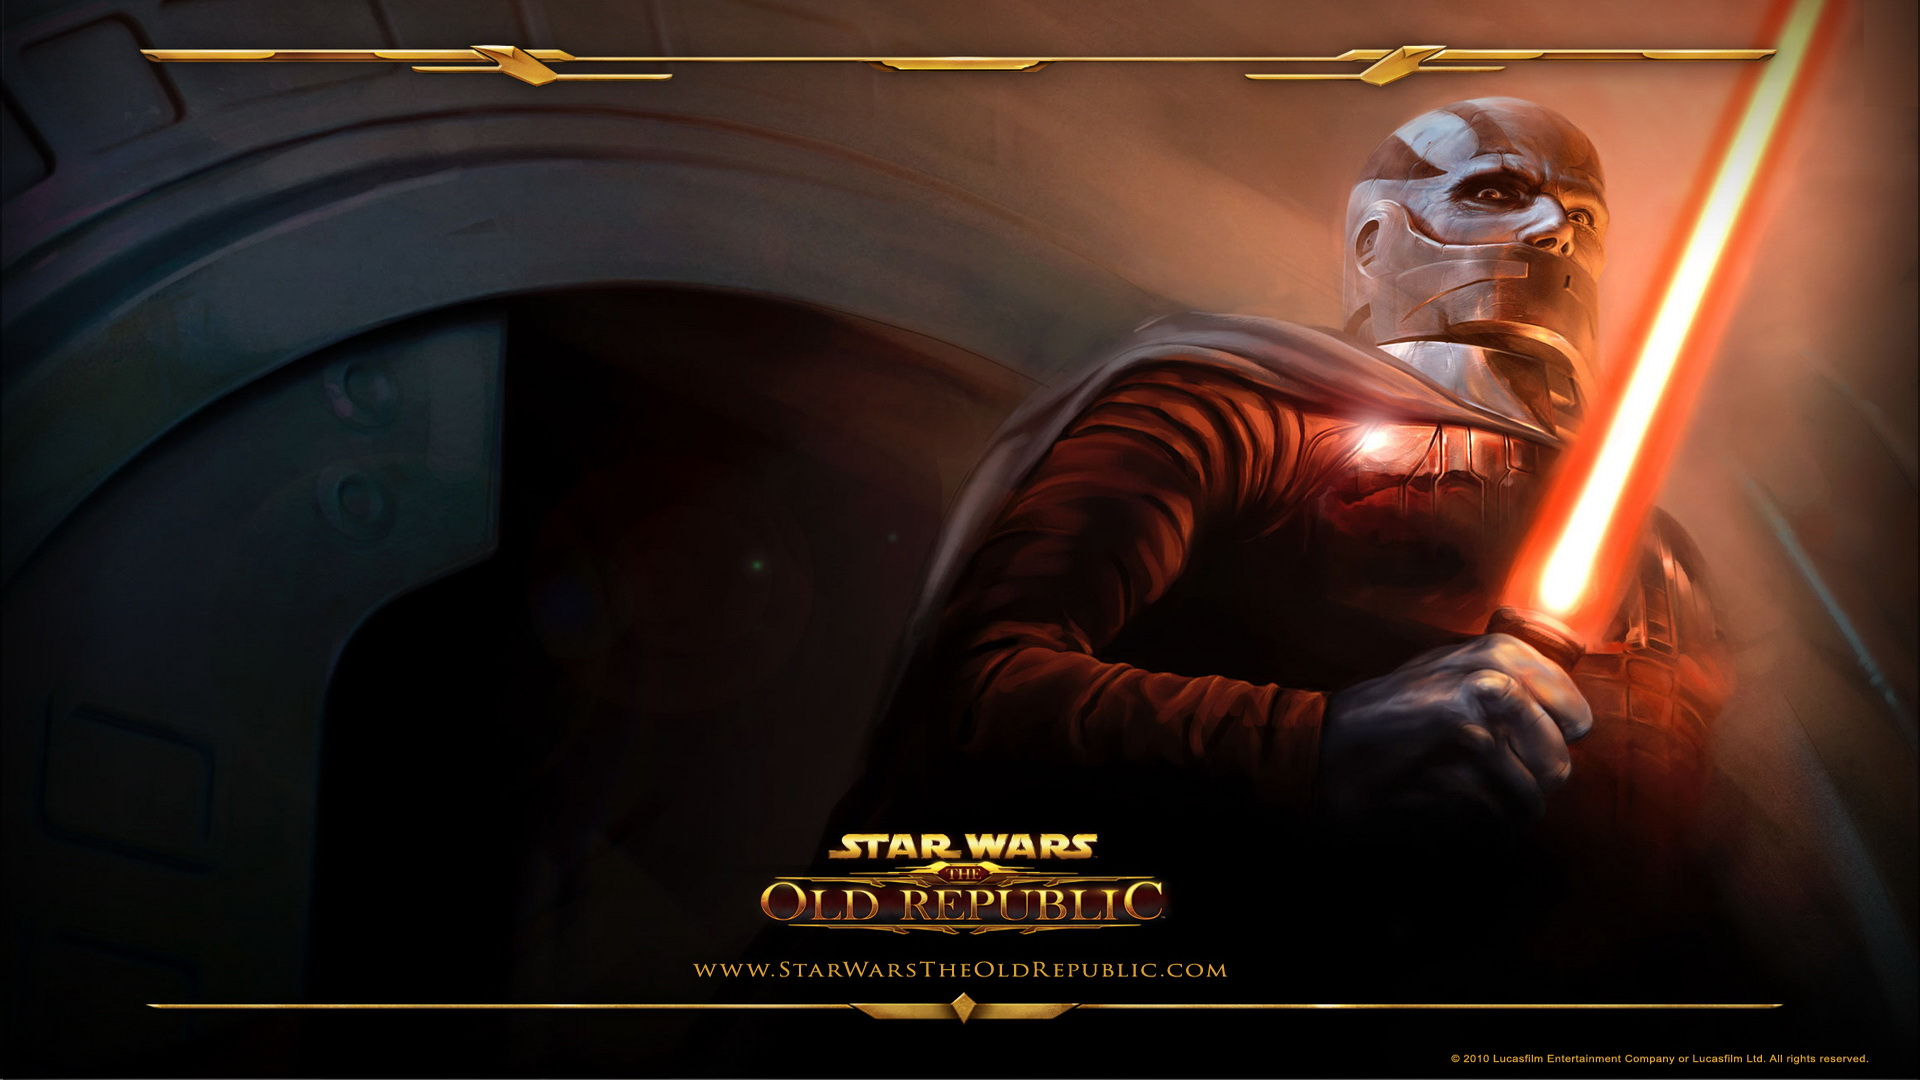 Game HD Wallpapers Video Games HD 1080p Wallpaper star wars the old 1920x1080